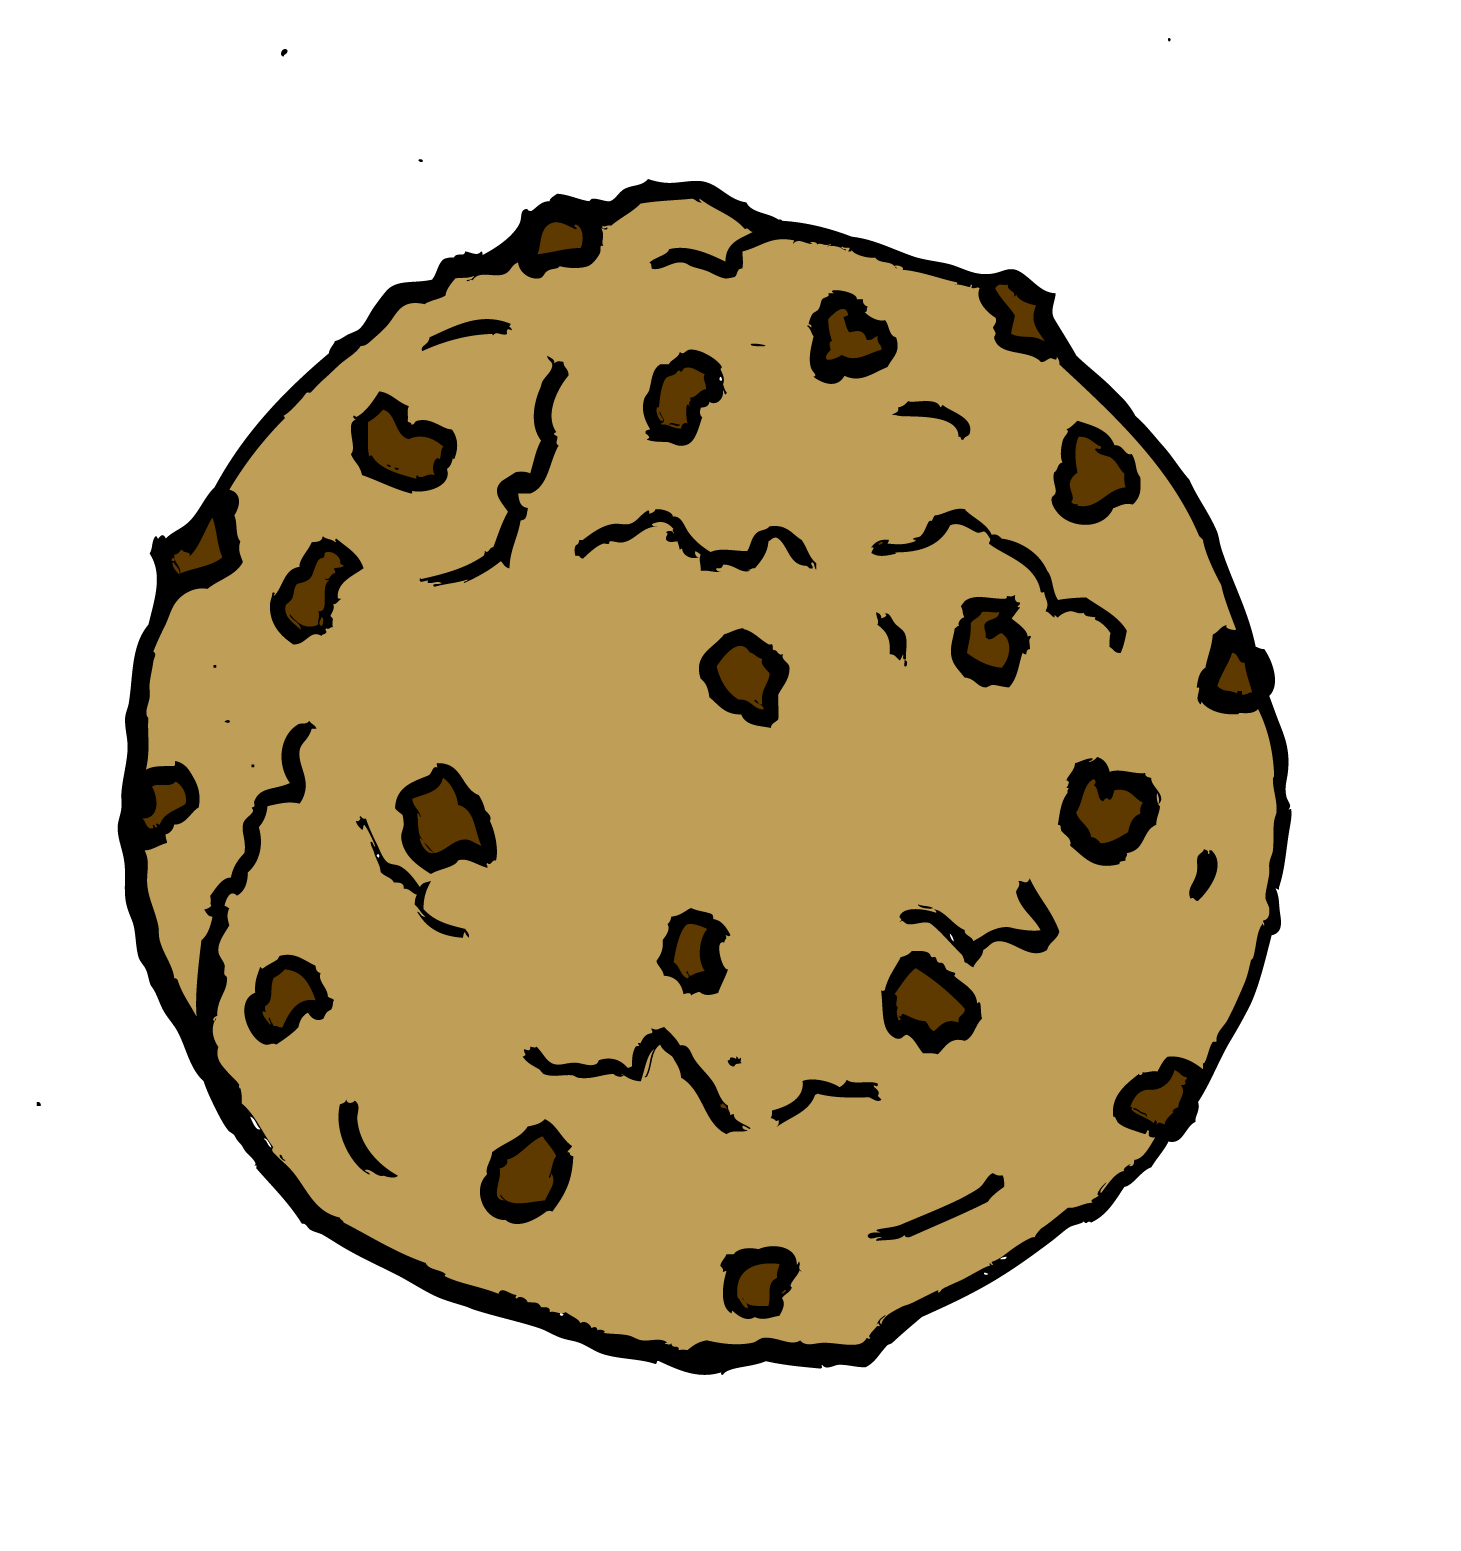 Cookie jar clipart free images 2 2.